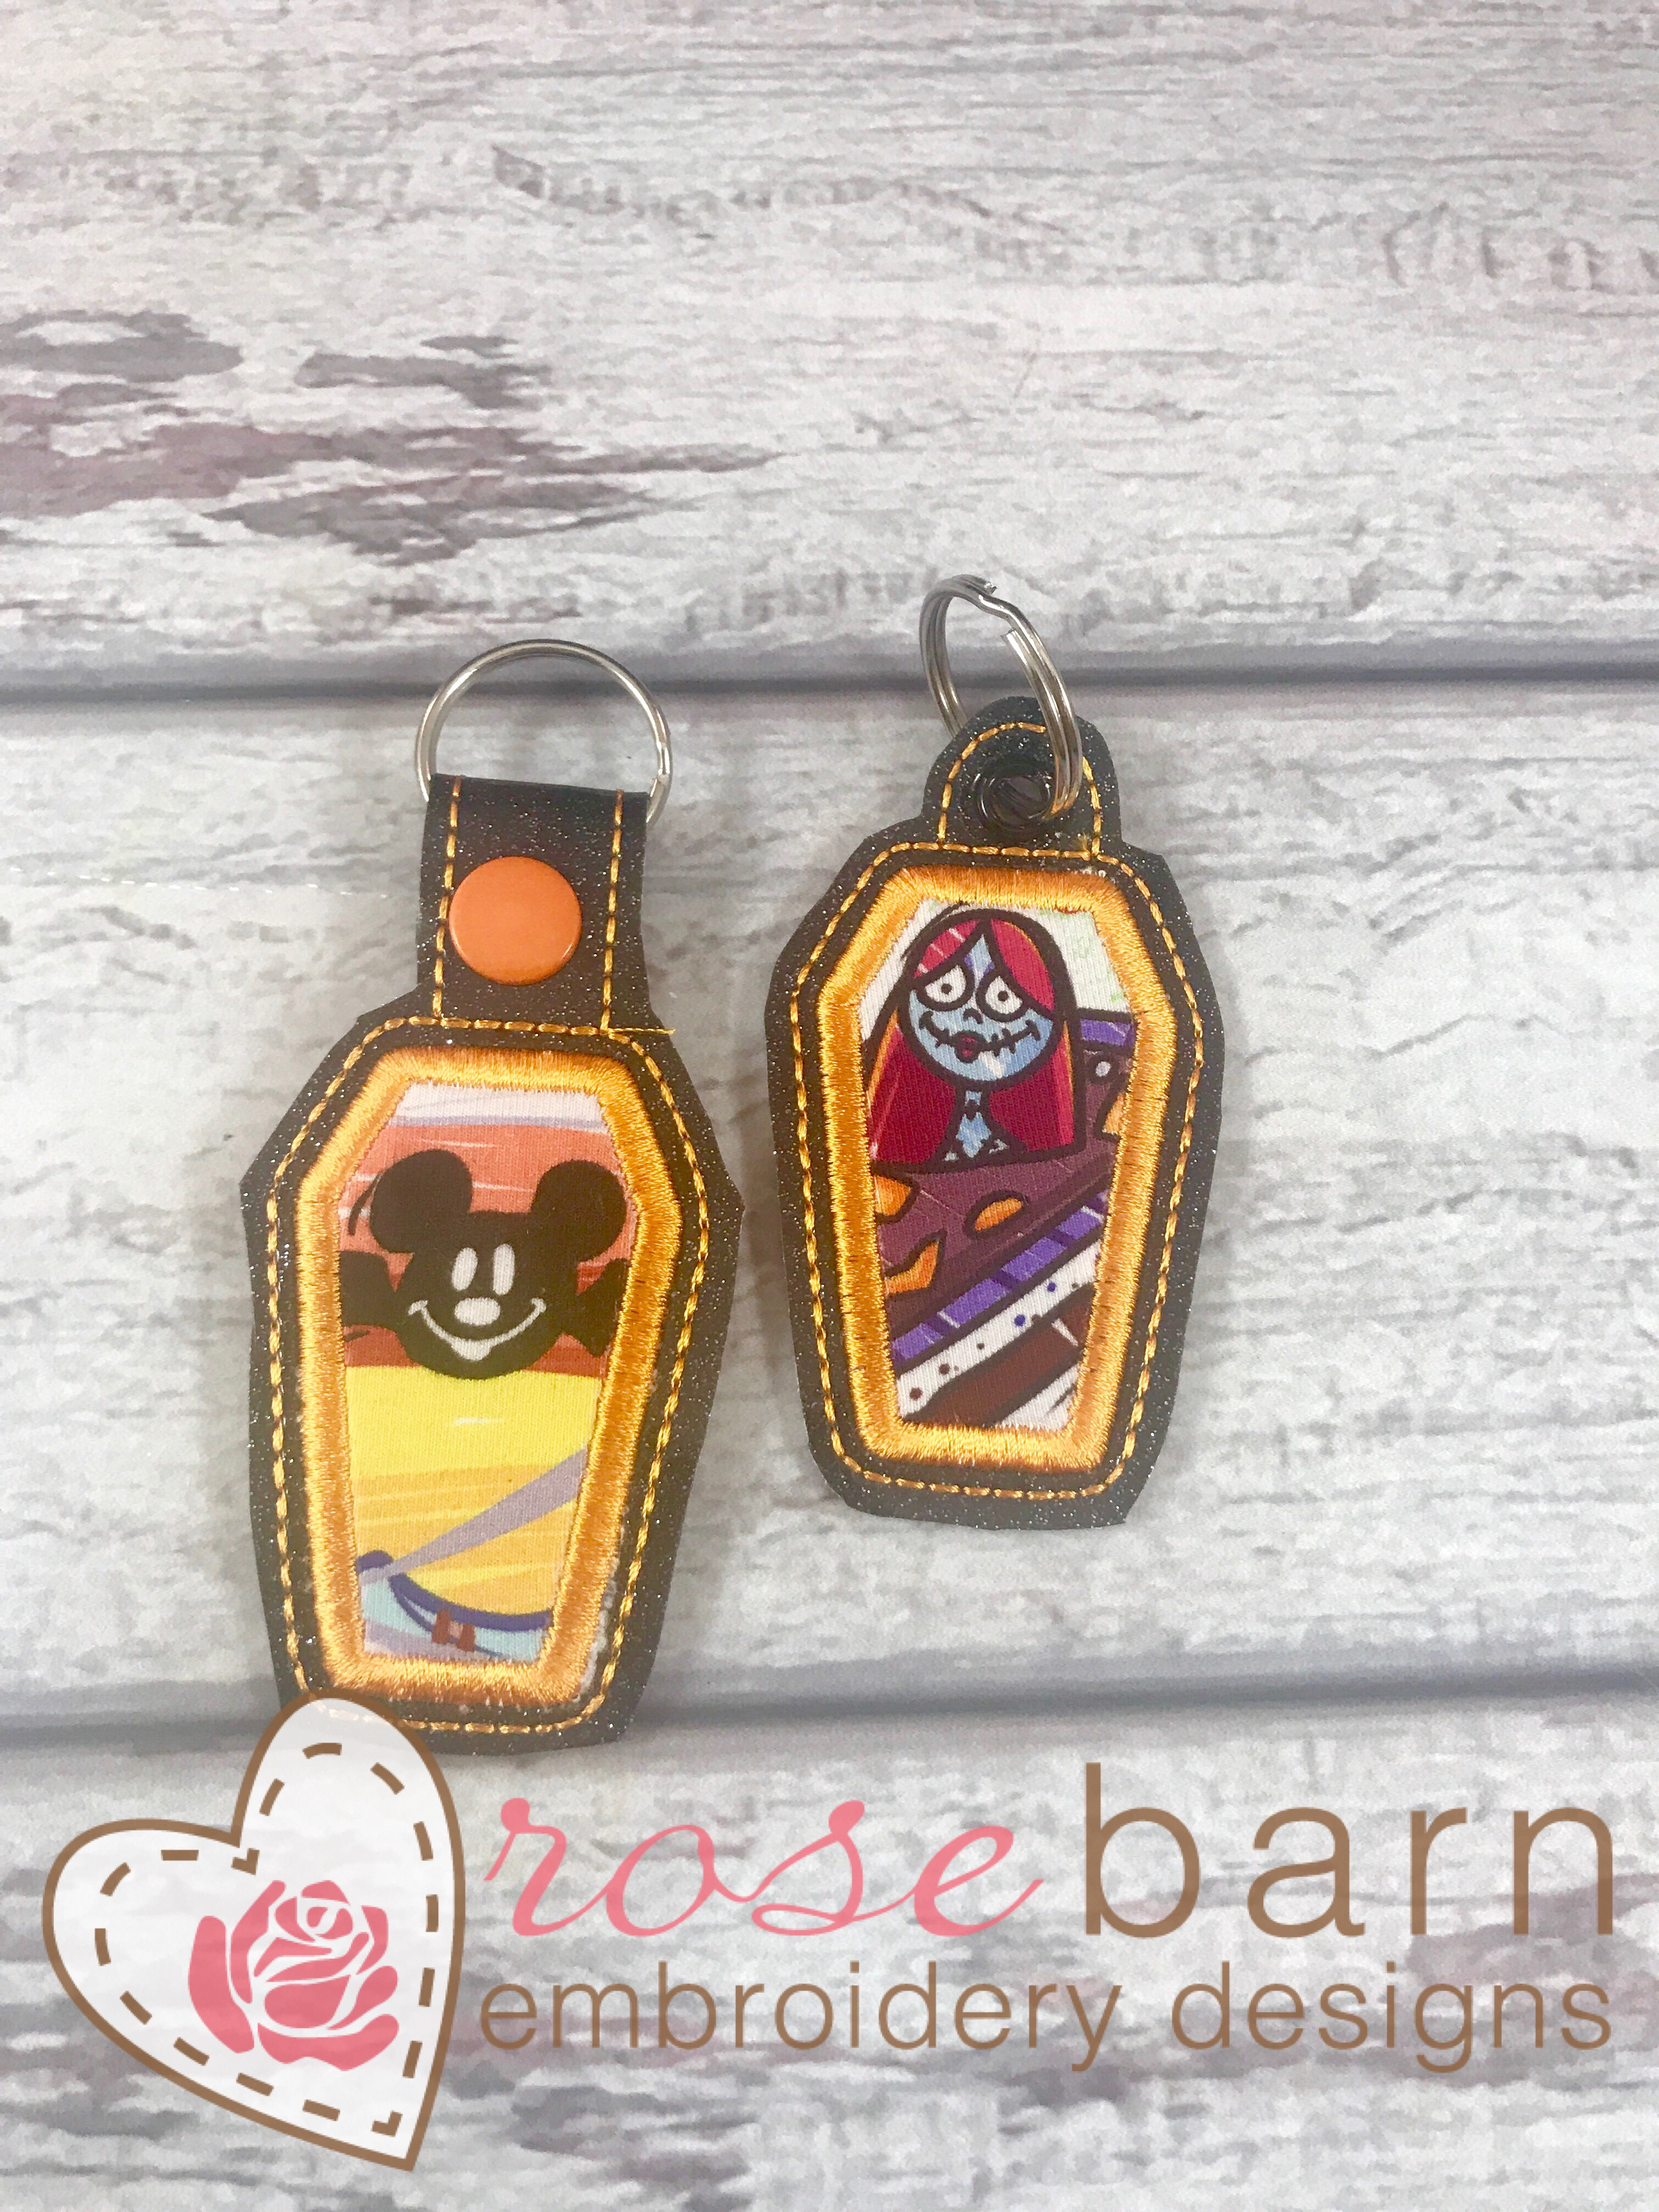 Coffin Applique Key Fob